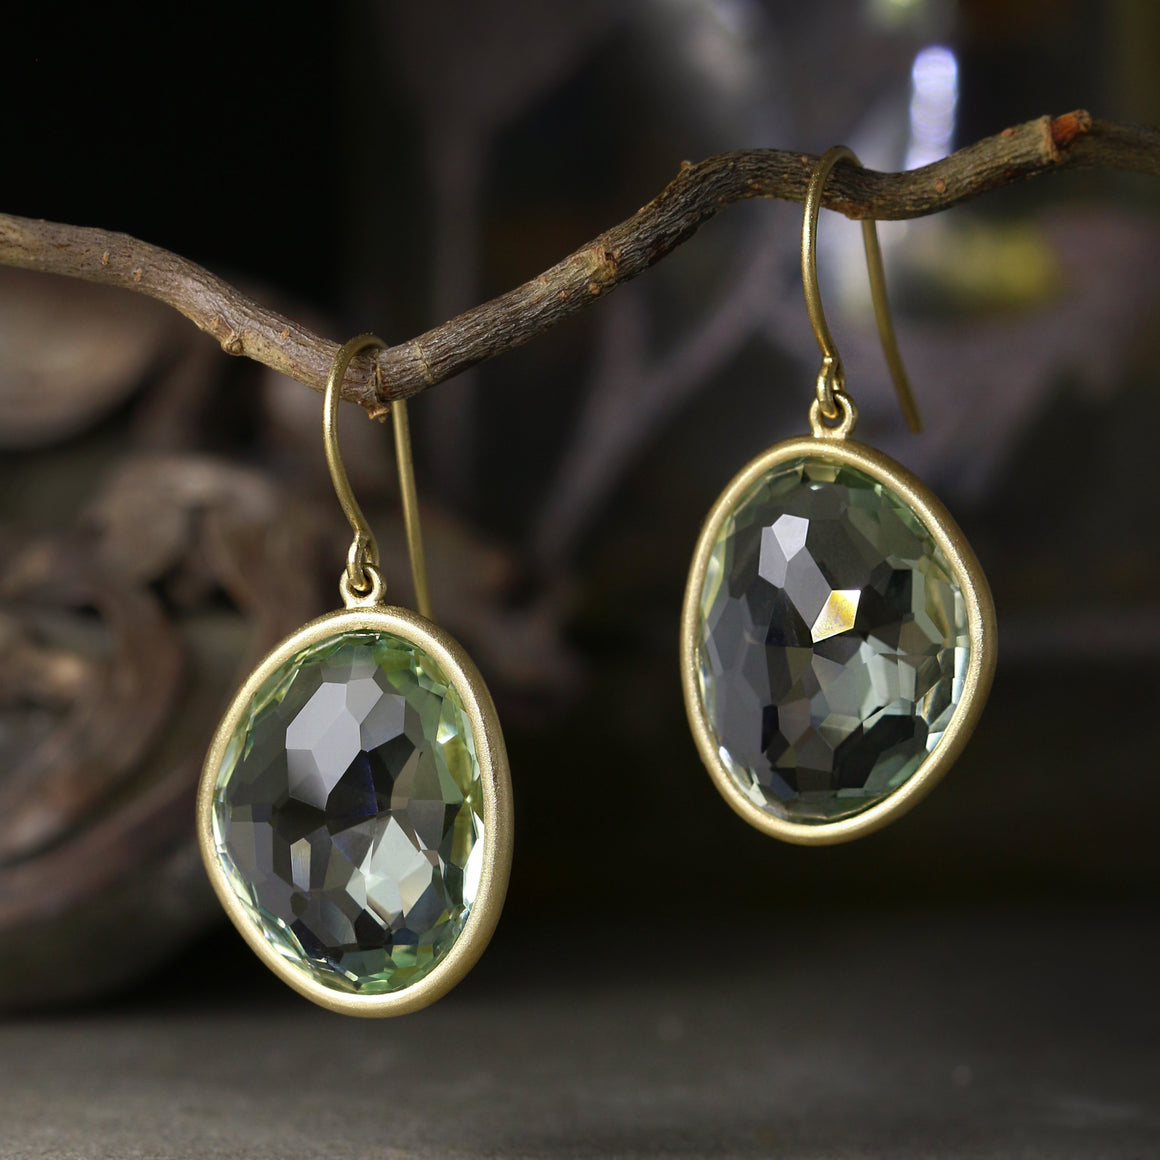 Piedras Earrings with Prasiolite - Medium